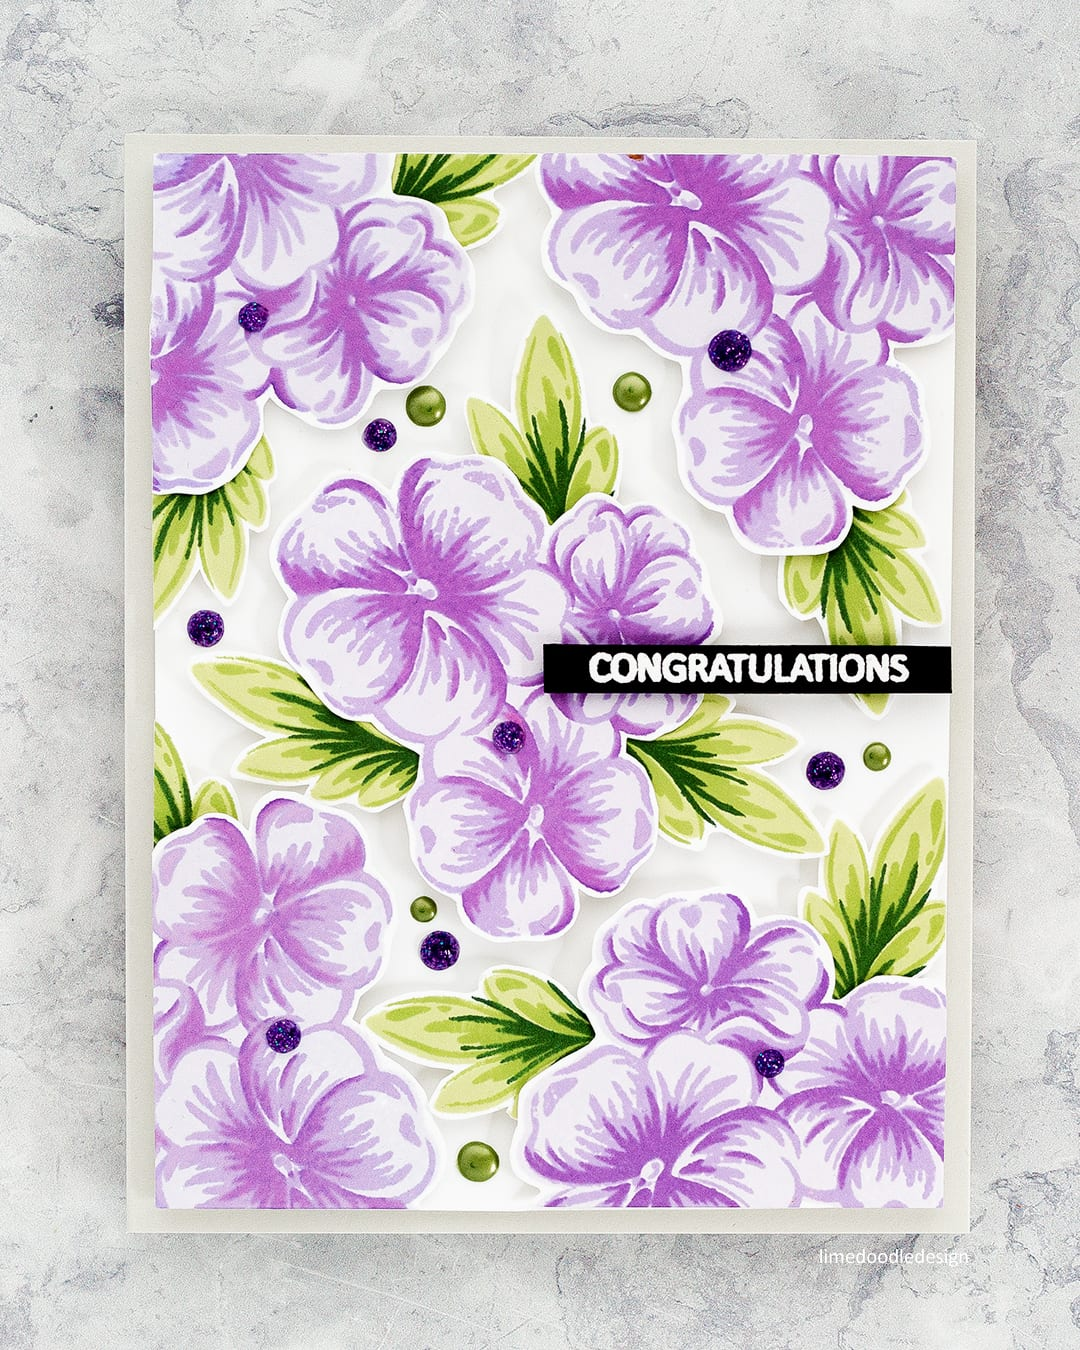 Full card floral background handmade card by Debby Hughes using the new Clearly Besotted STAMPtember My Best Friend stamp set. Find out more here: https://limedoodledesign.com/2017/09/clearly-besotted-stamptember/